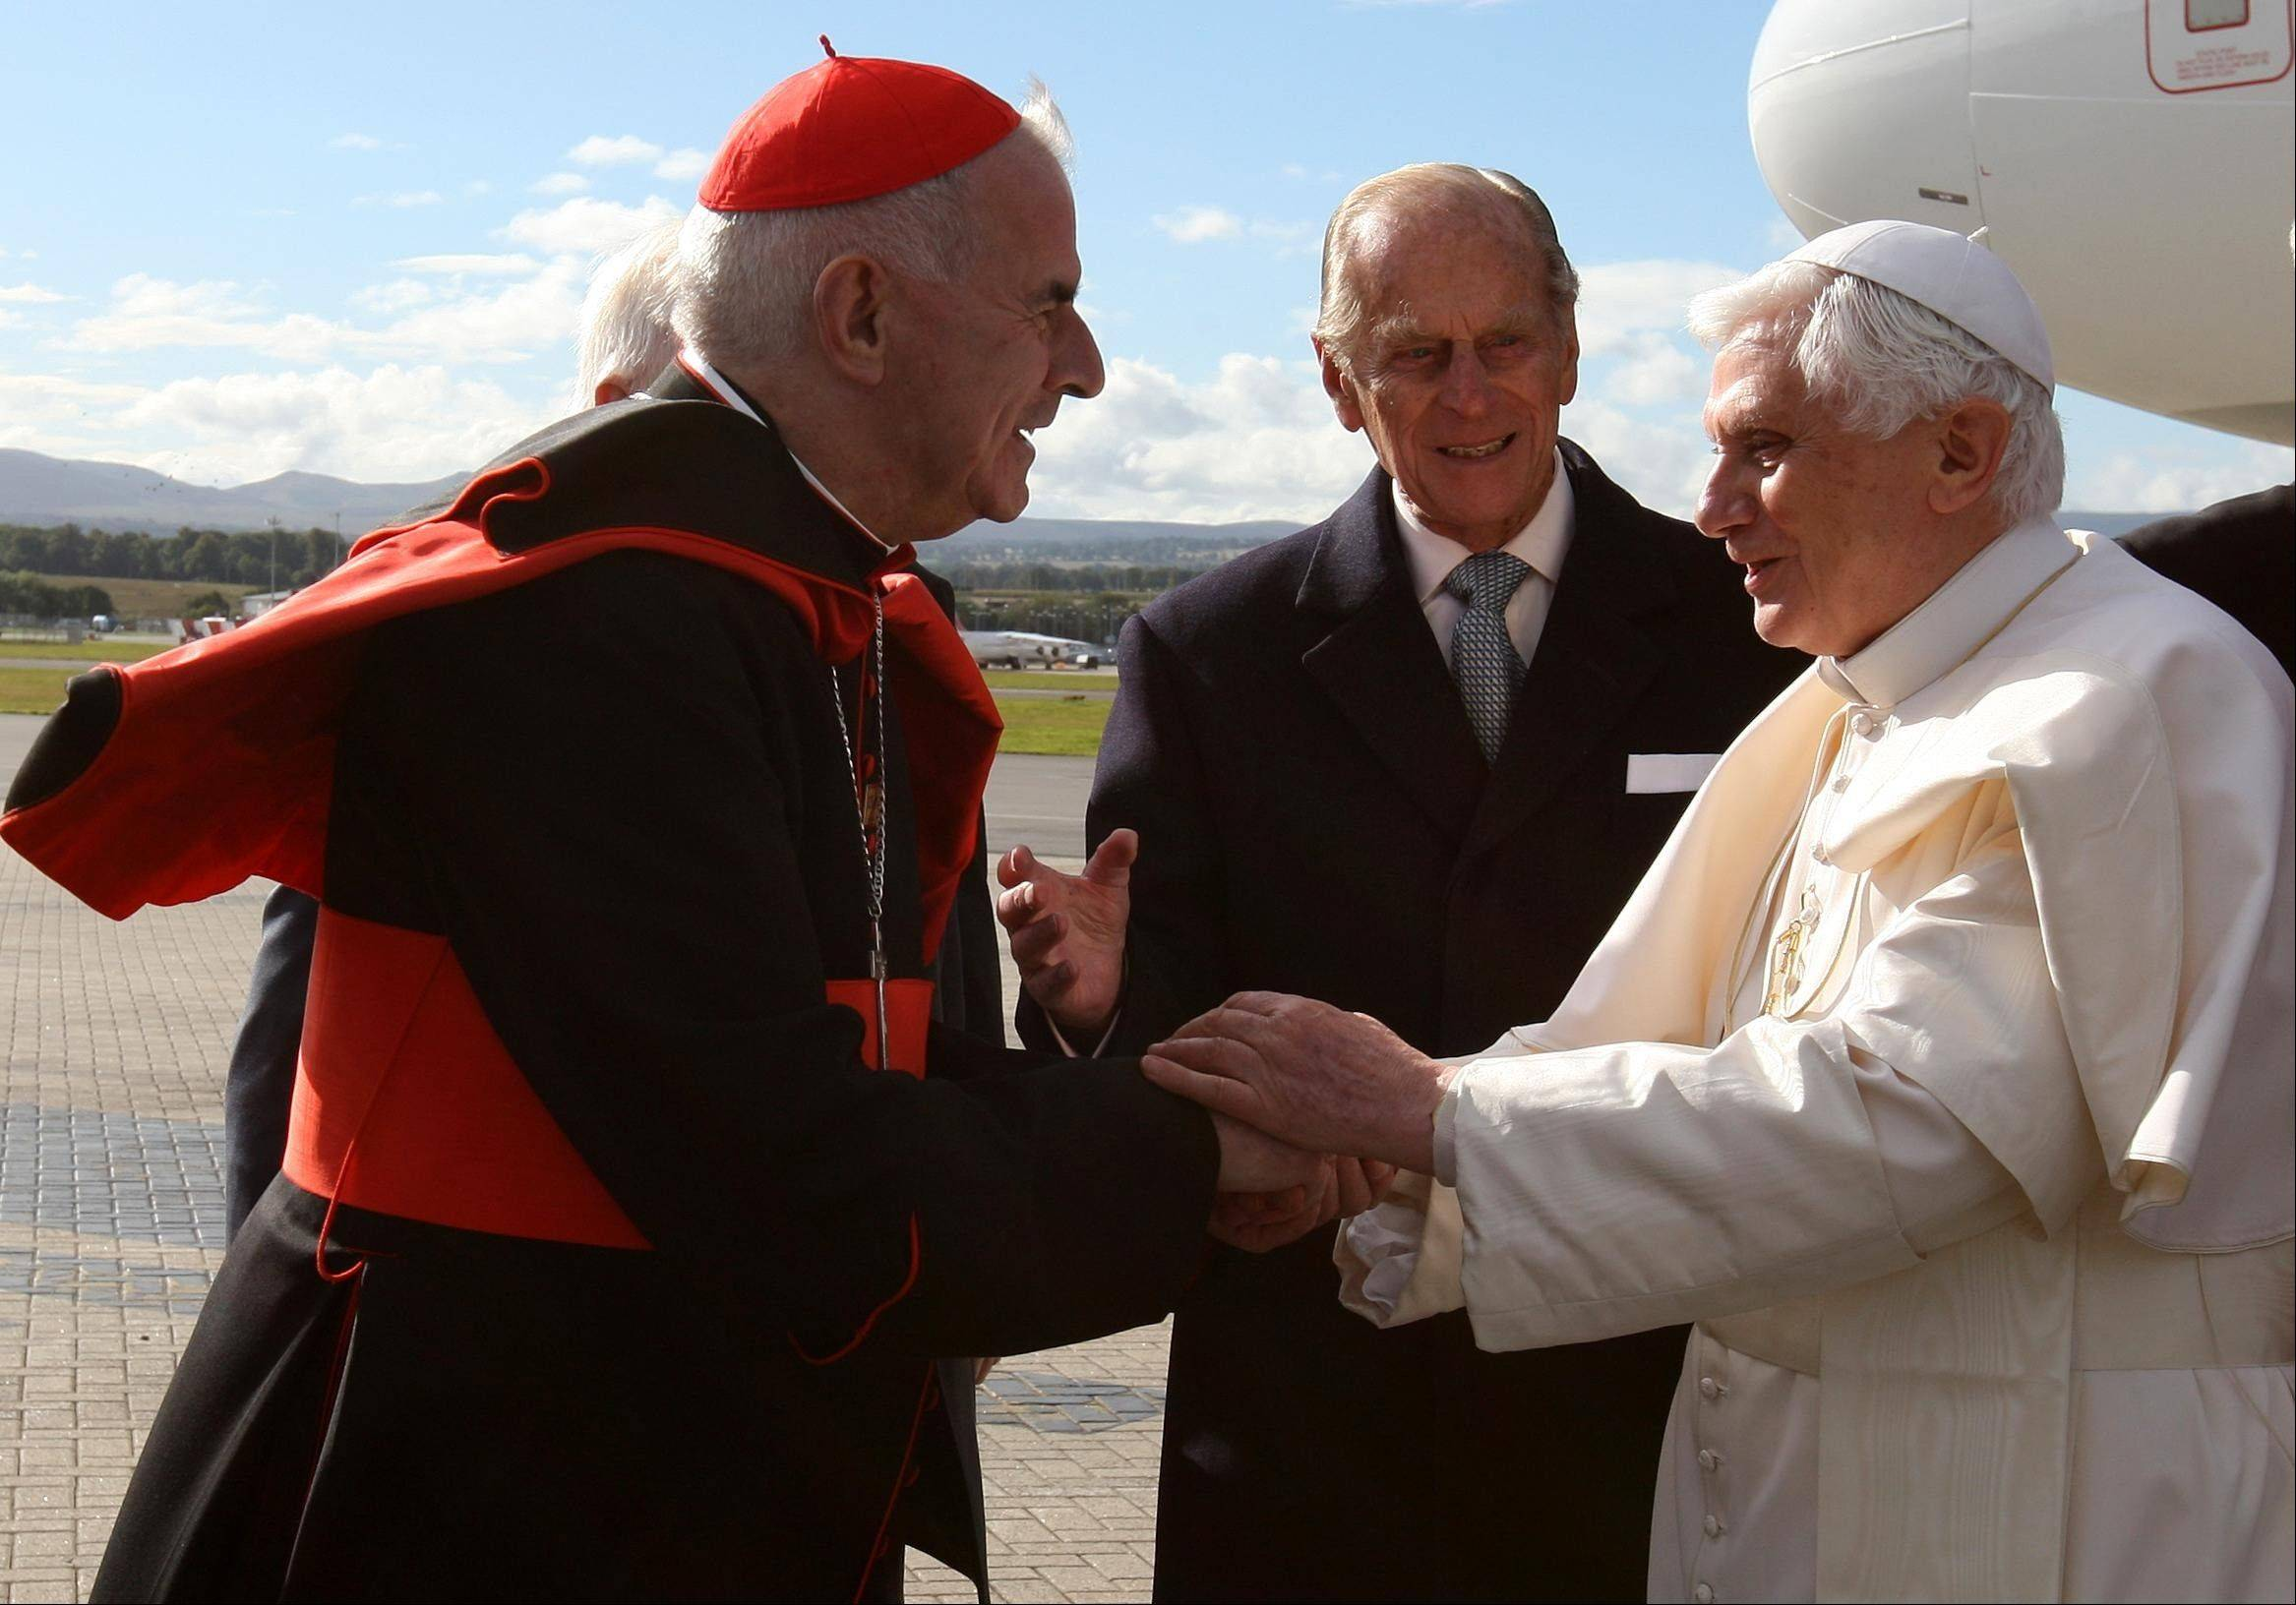 Cardinal Keith O�Brien, left, resigned Monday due to allegations of misconduct. He said he wouldn�t take part in the conclave to elect the next pope after being accused of improper conduct with priests.